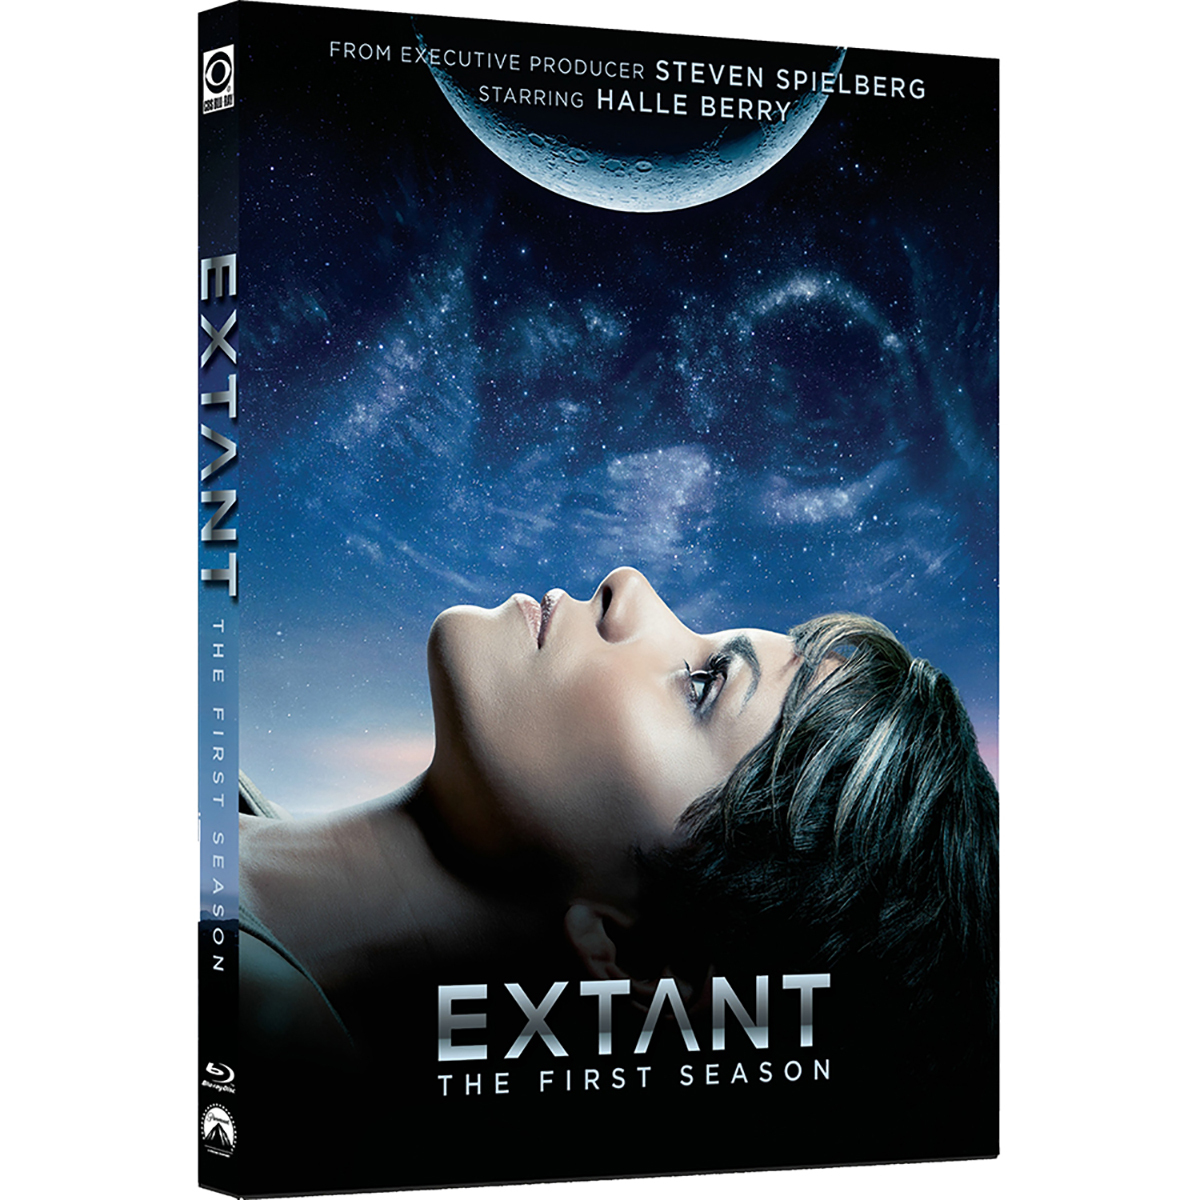 Extant: Season 1 Blu-ray -  DVDs & Videos 6445-702295